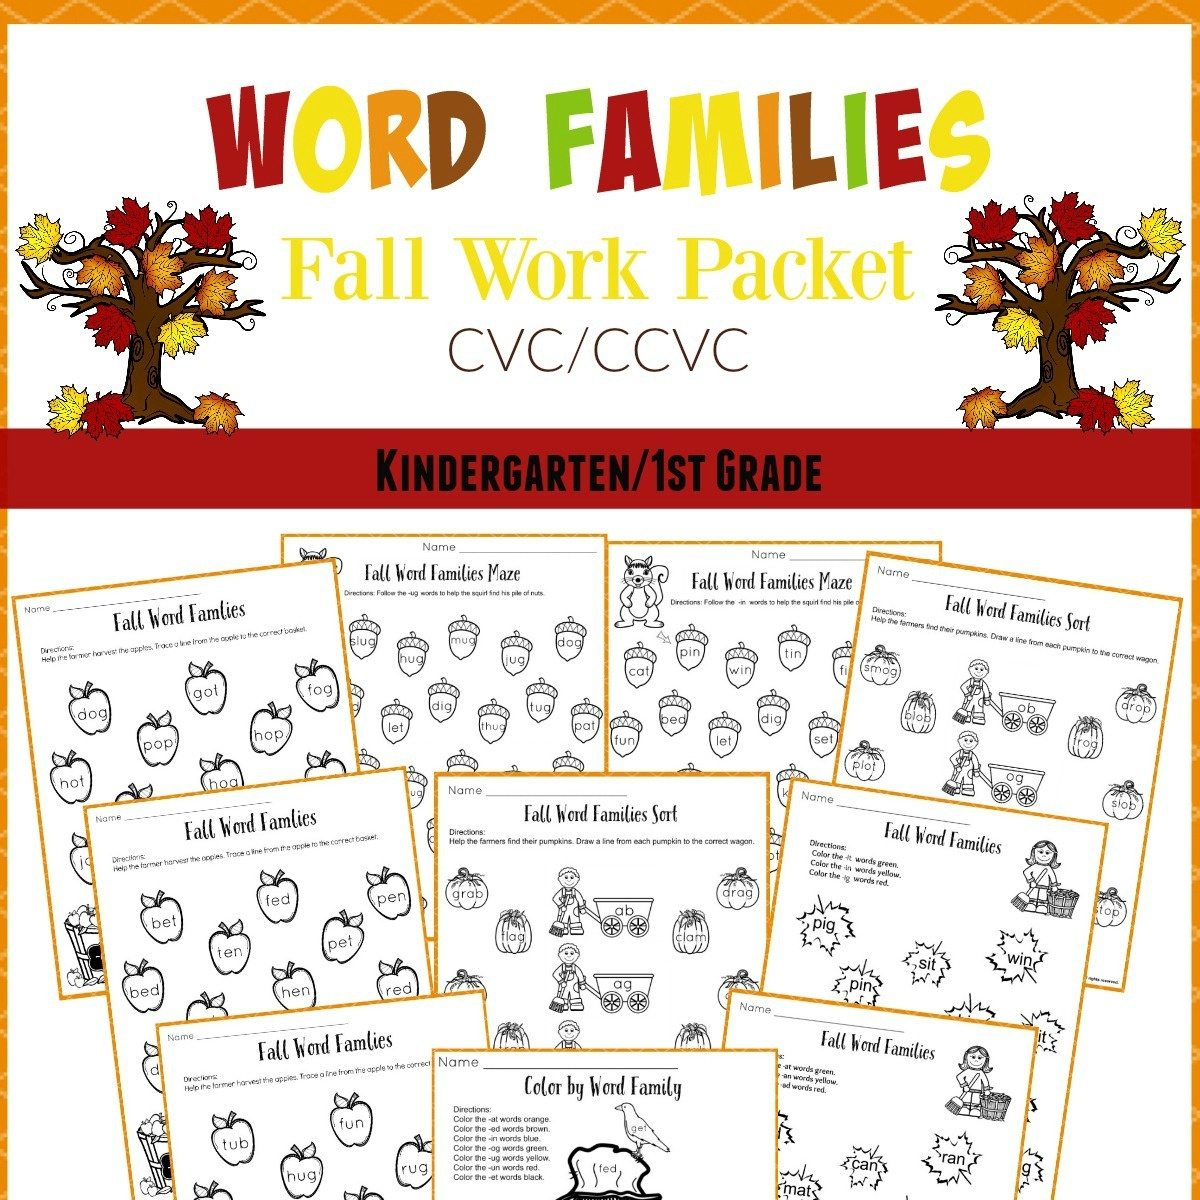 Fall Word Families Worksheets For Kindergarten Or 1St Grade - Free Printable Word Family Worksheets For Kindergarten